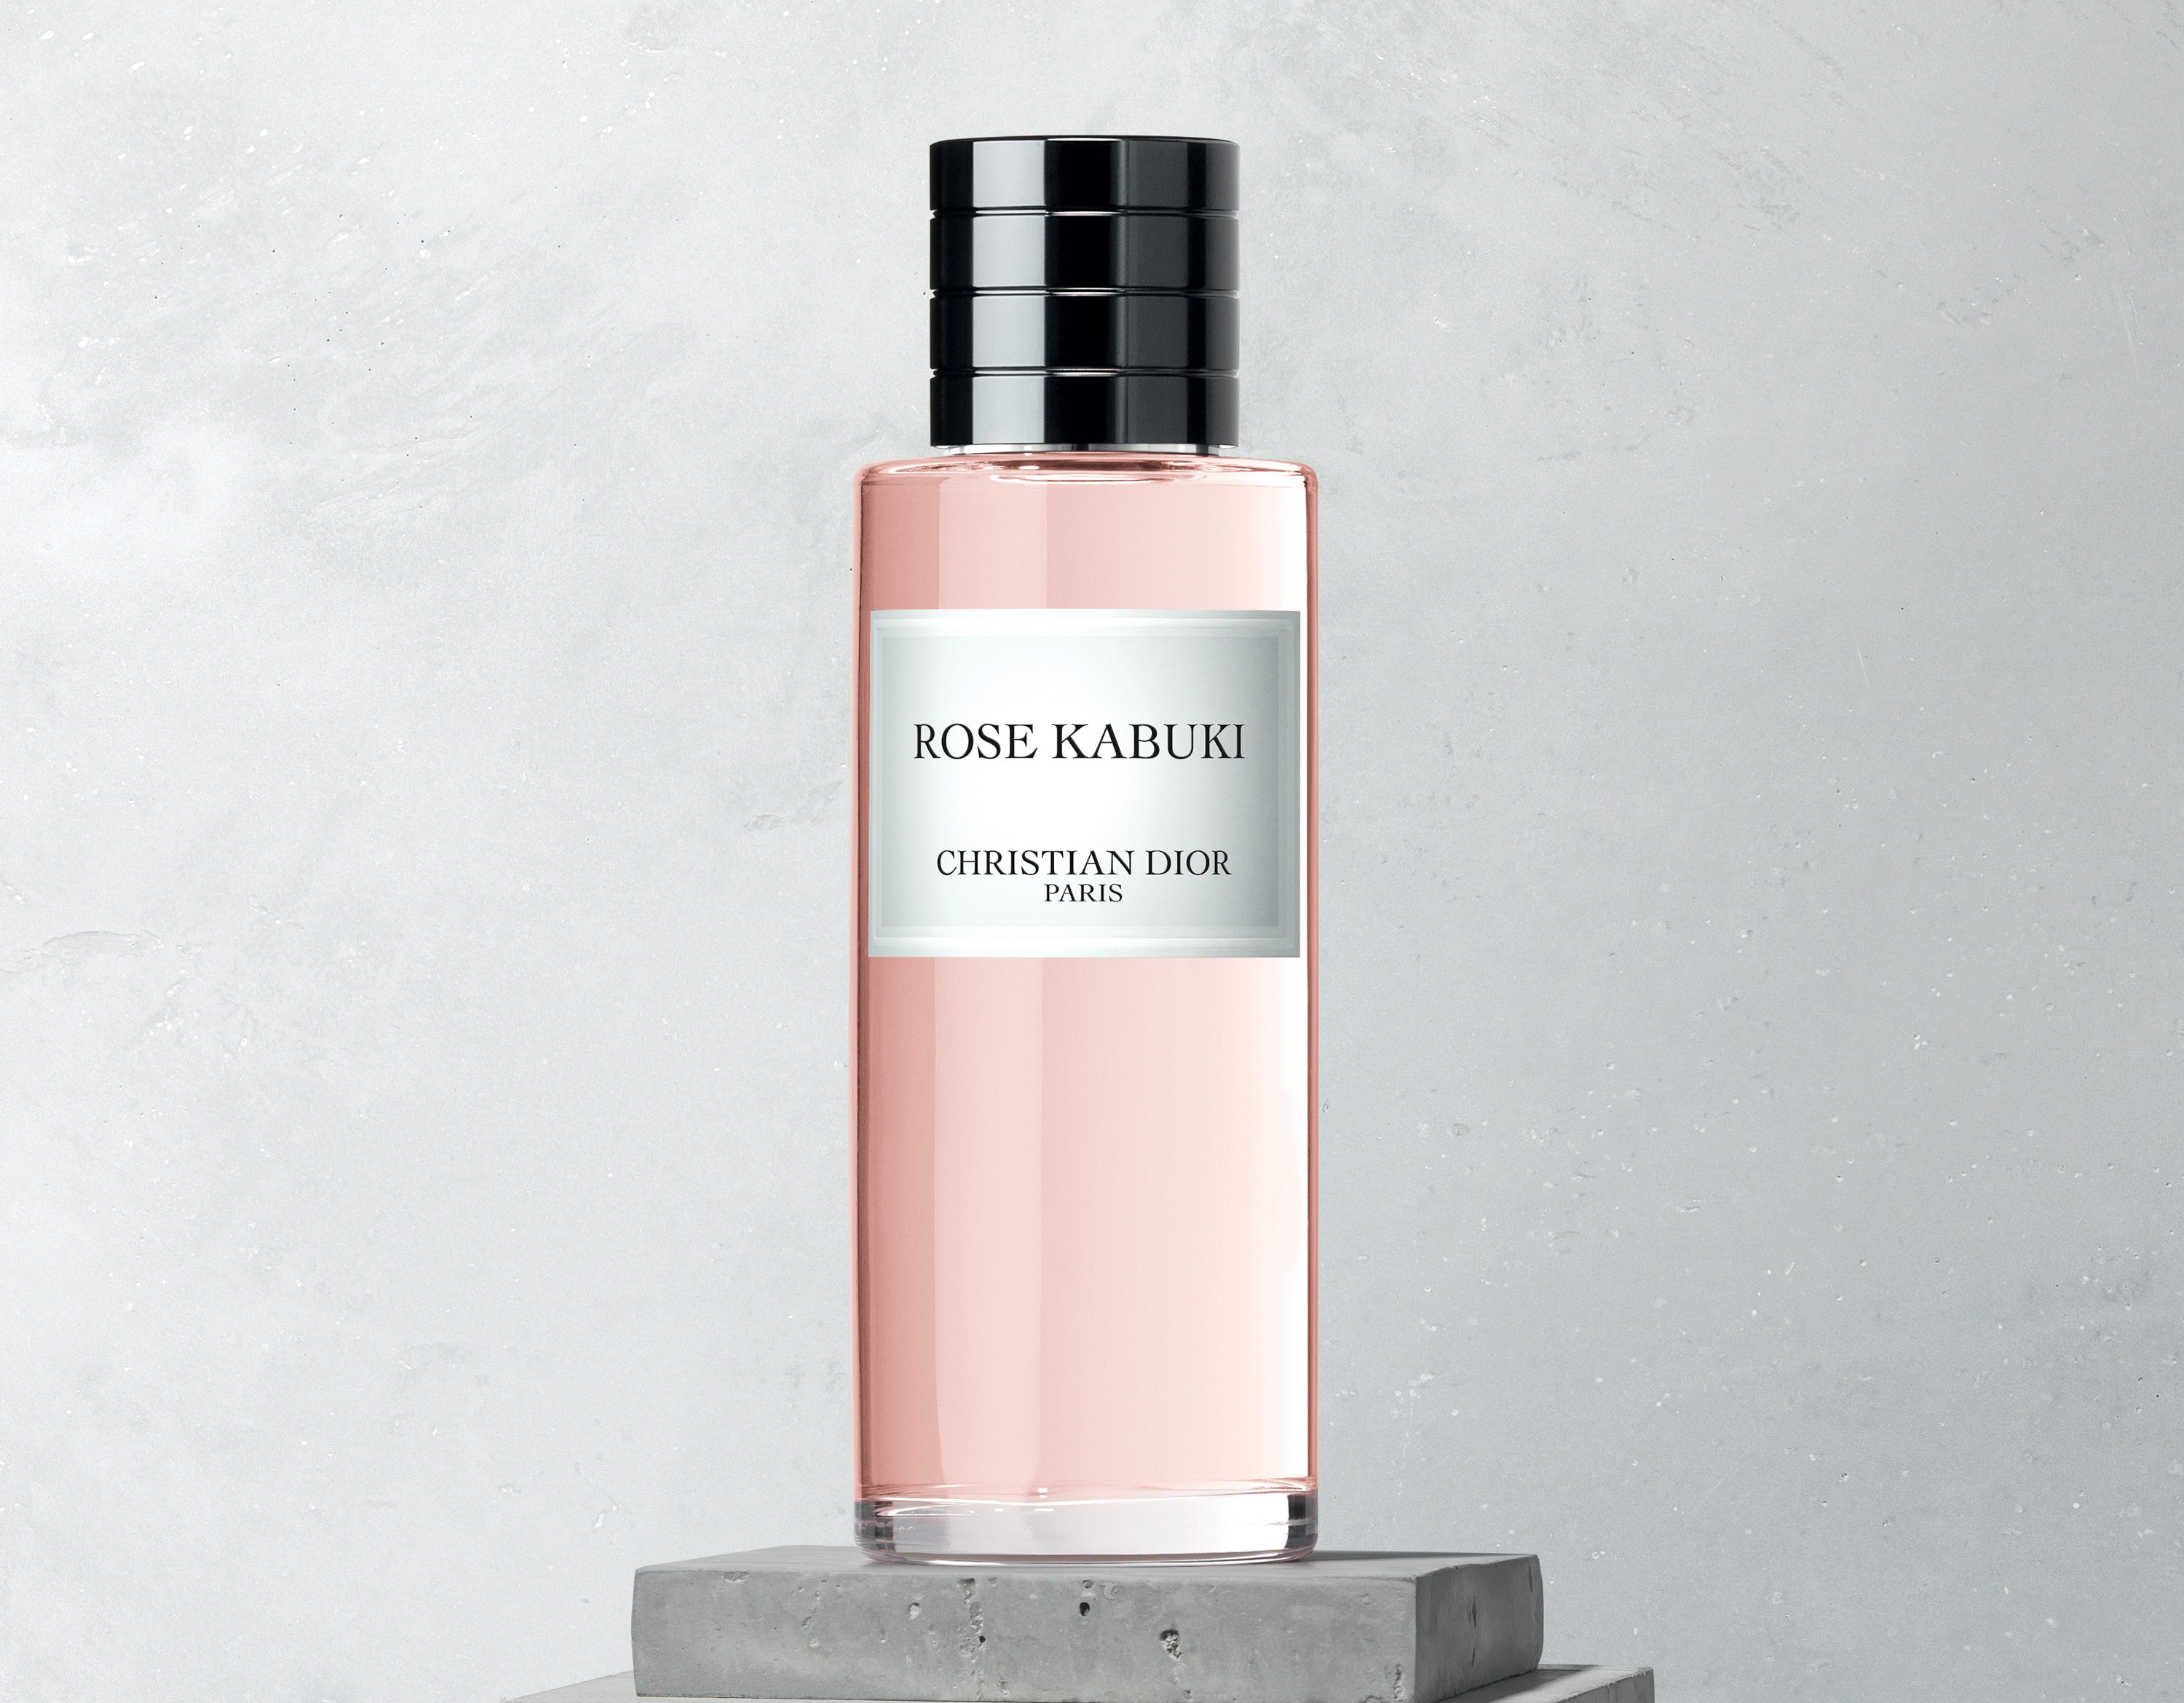 Rose Kabuki Christian Dior Perfume A New Fragrance For Women And